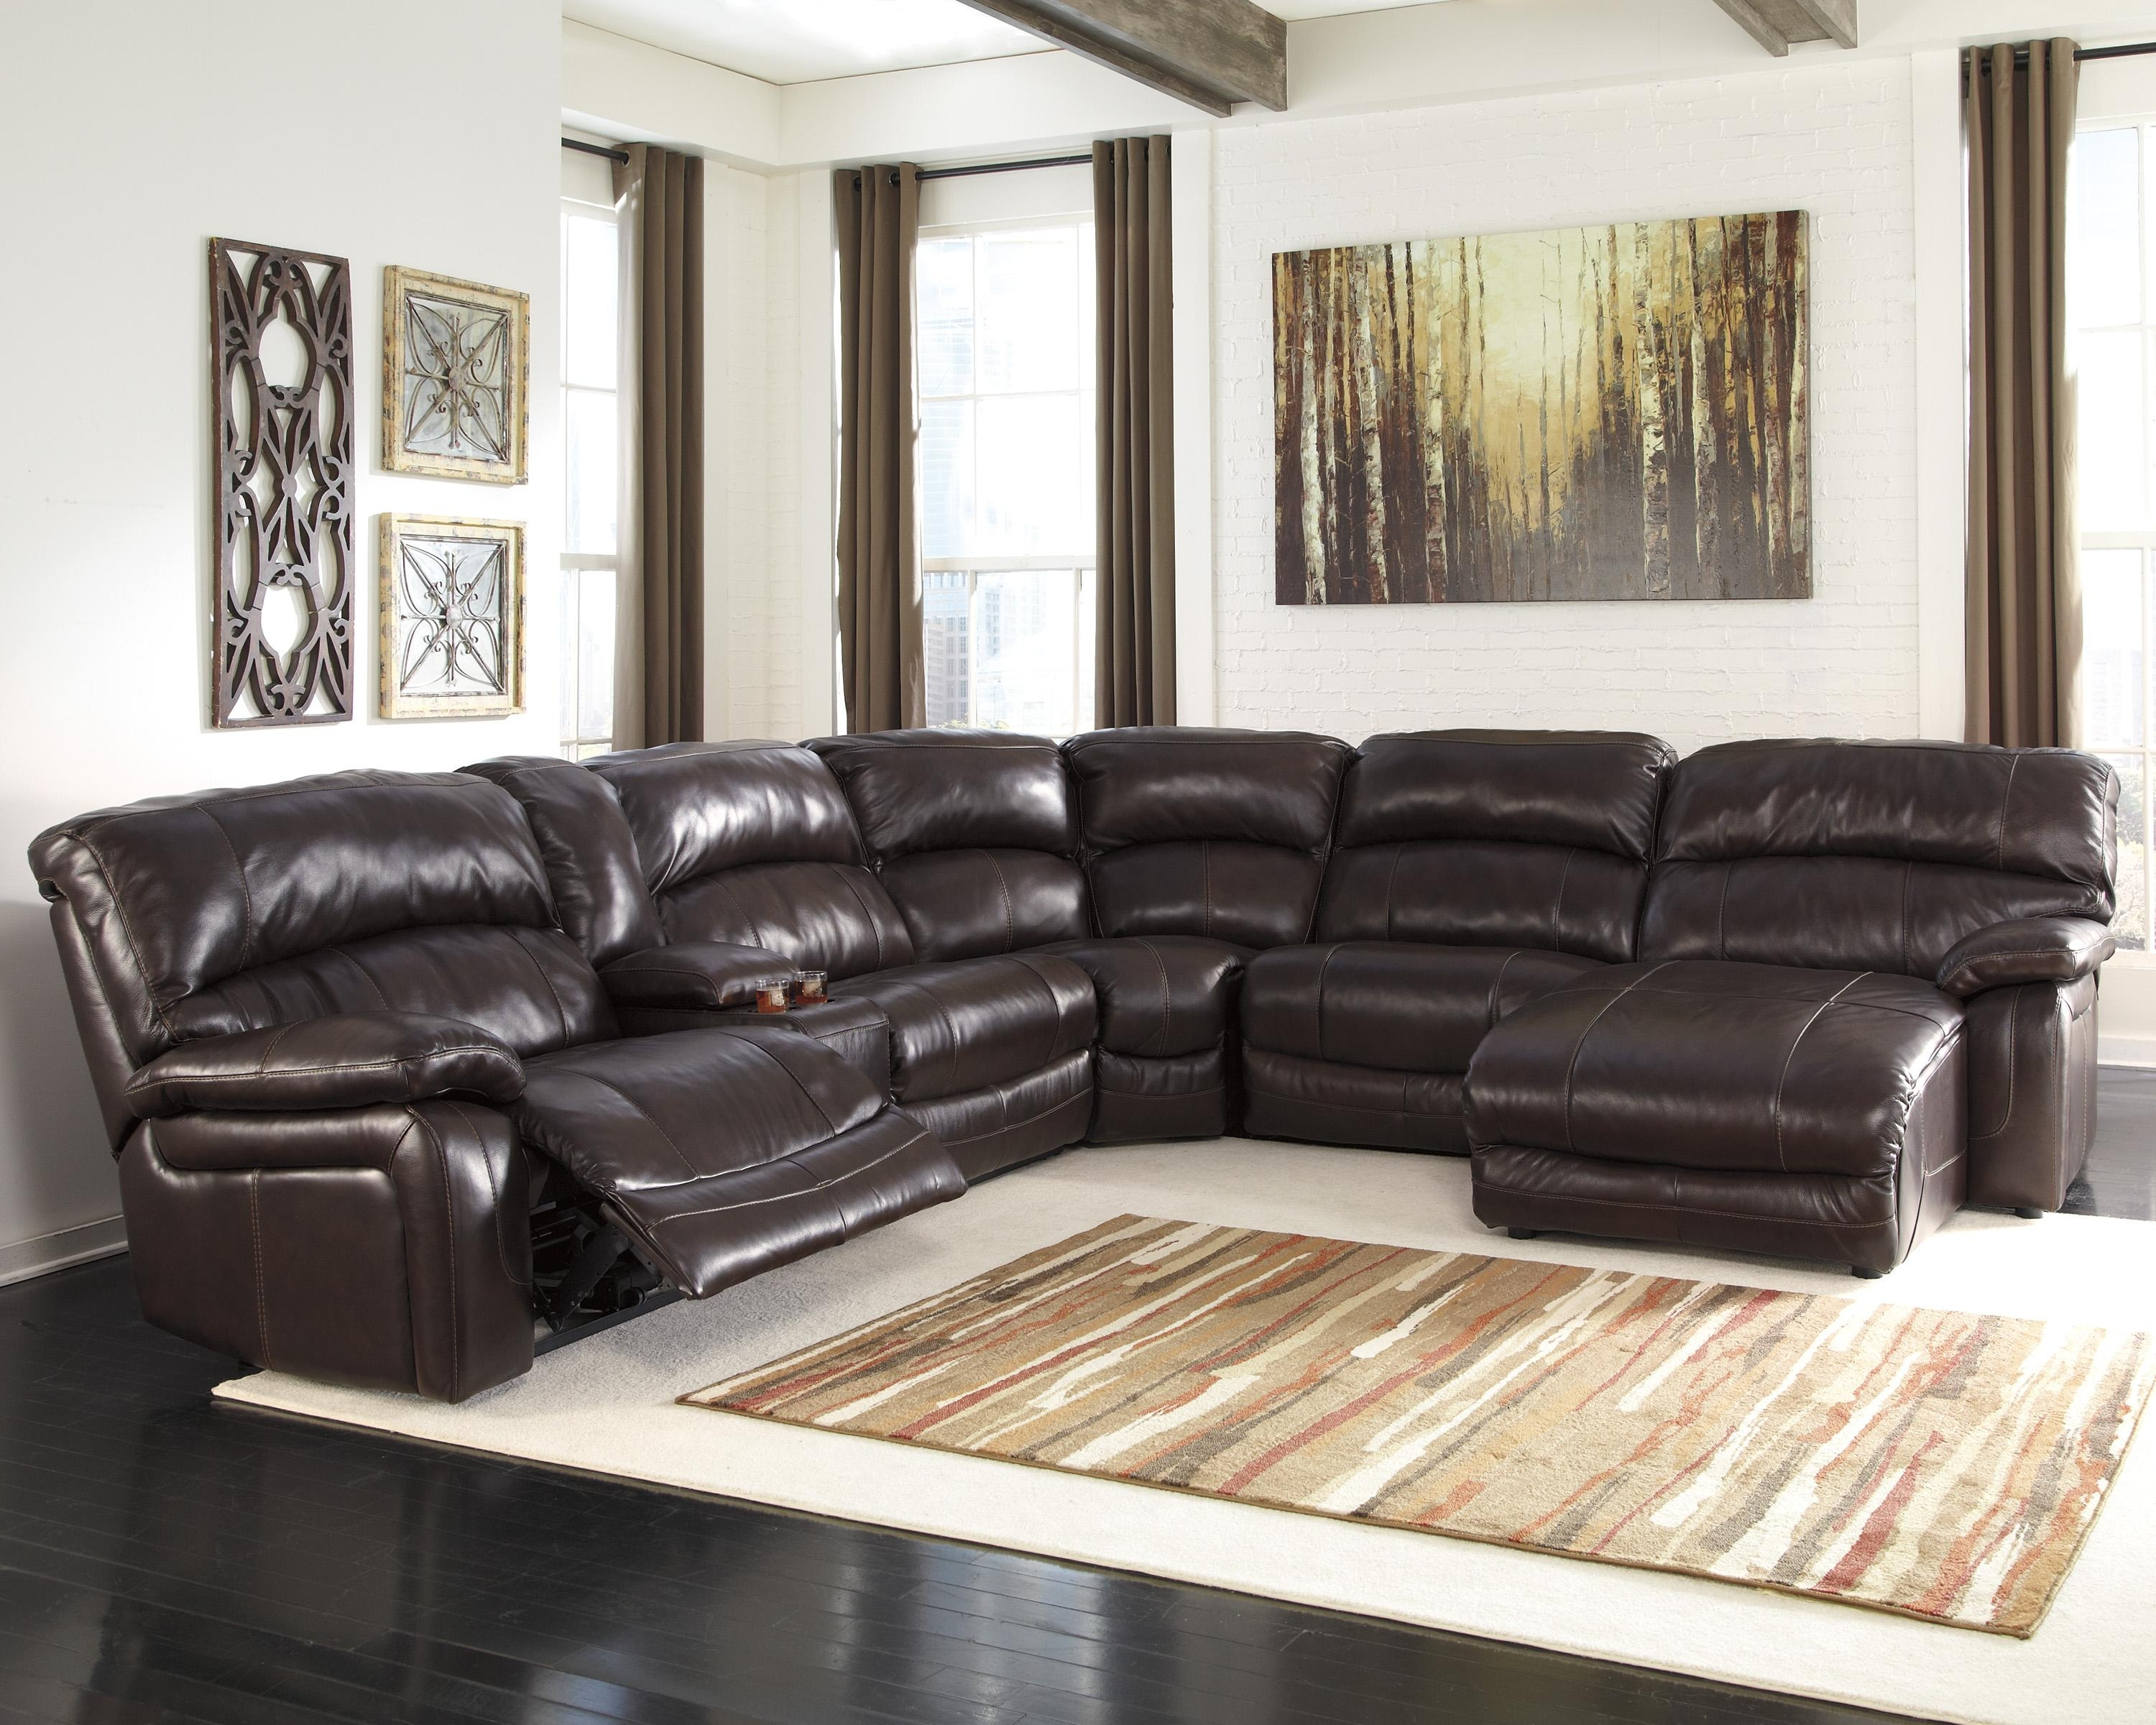 Furniture & Rug: Cheap Sectional Couches For Home Furniture Idea With Ashley Sectional Sleeper (Image 4 of 15)